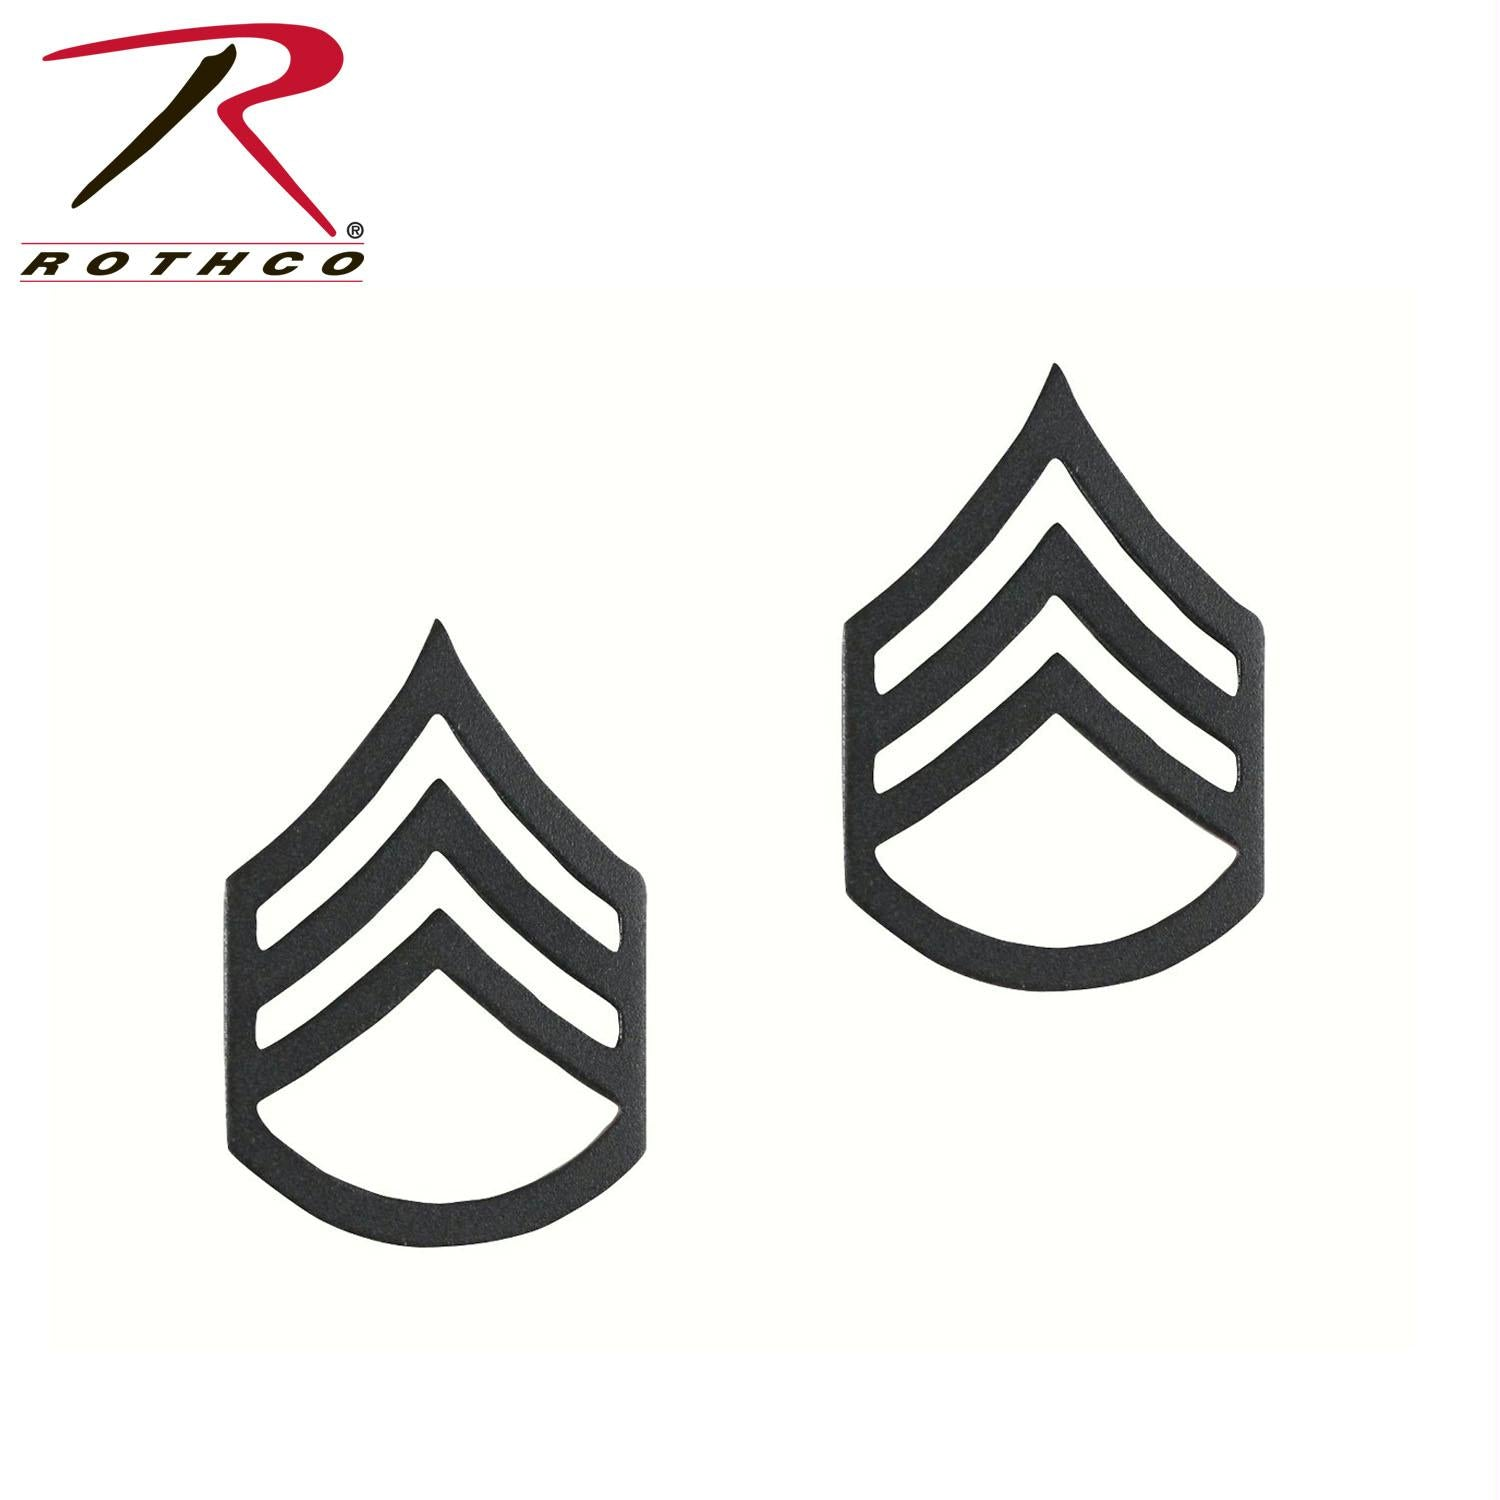 Rothco Staff Sergeant Polished Insignia - Subdued